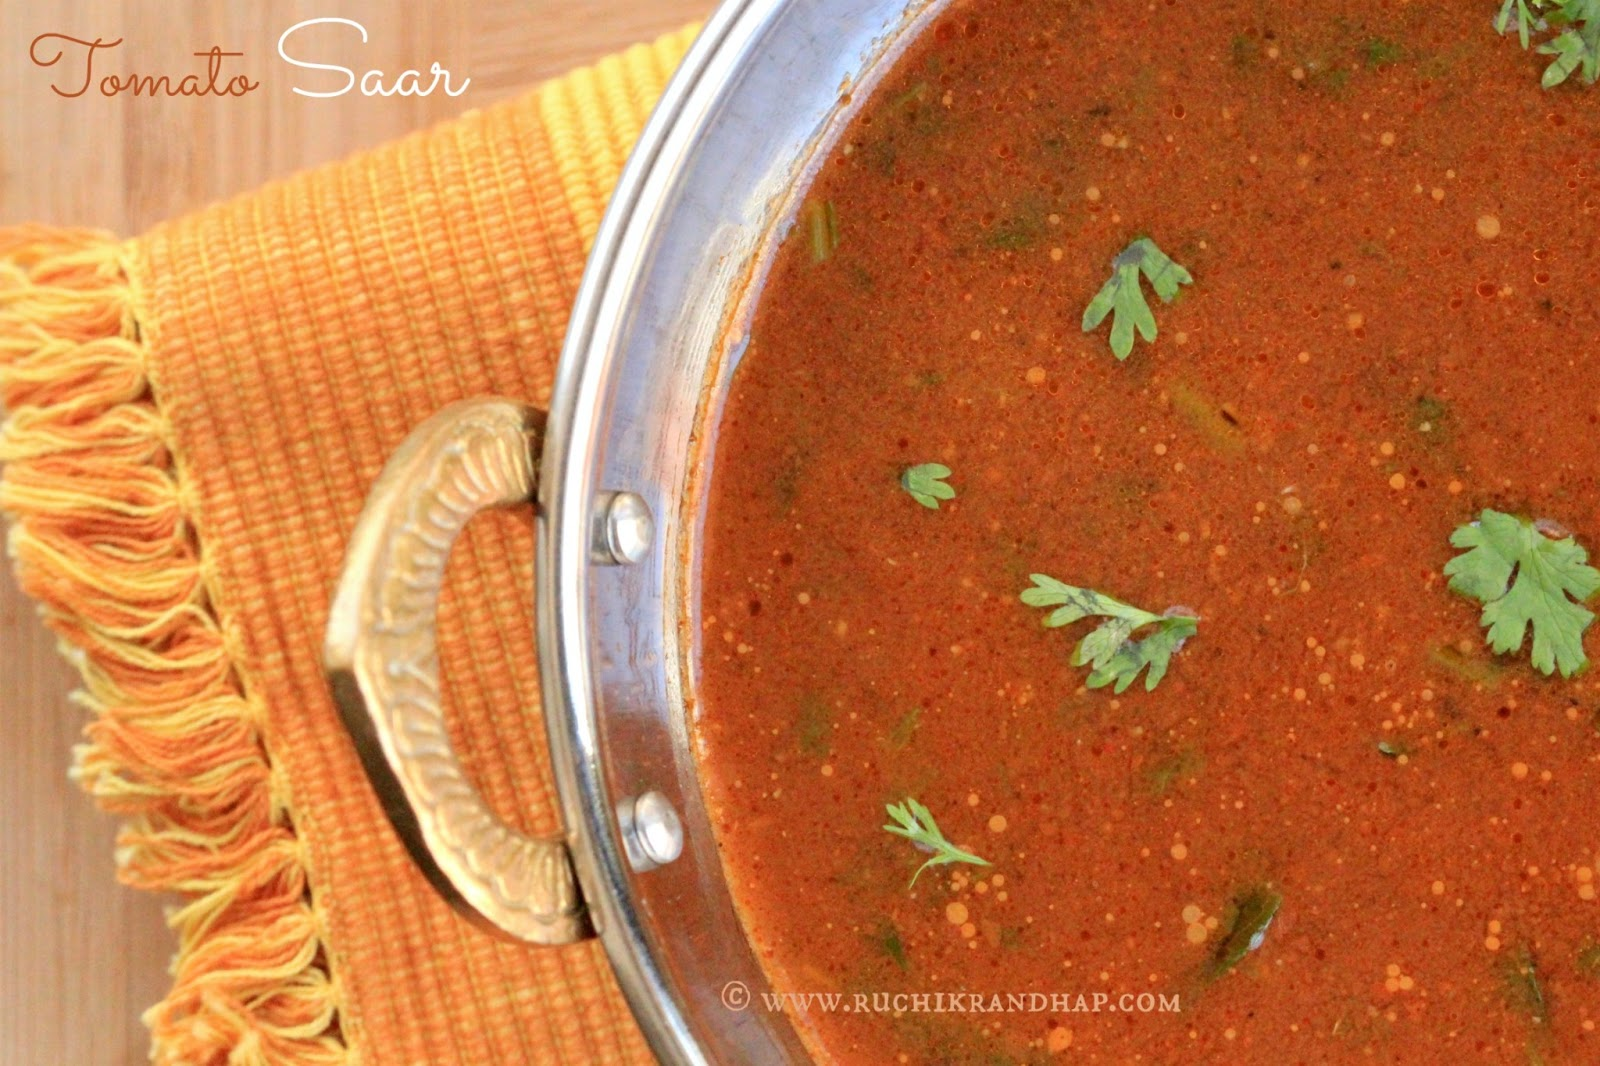 Tomato Saar With Cumin Pepper Spicy Watery Tomato Soup